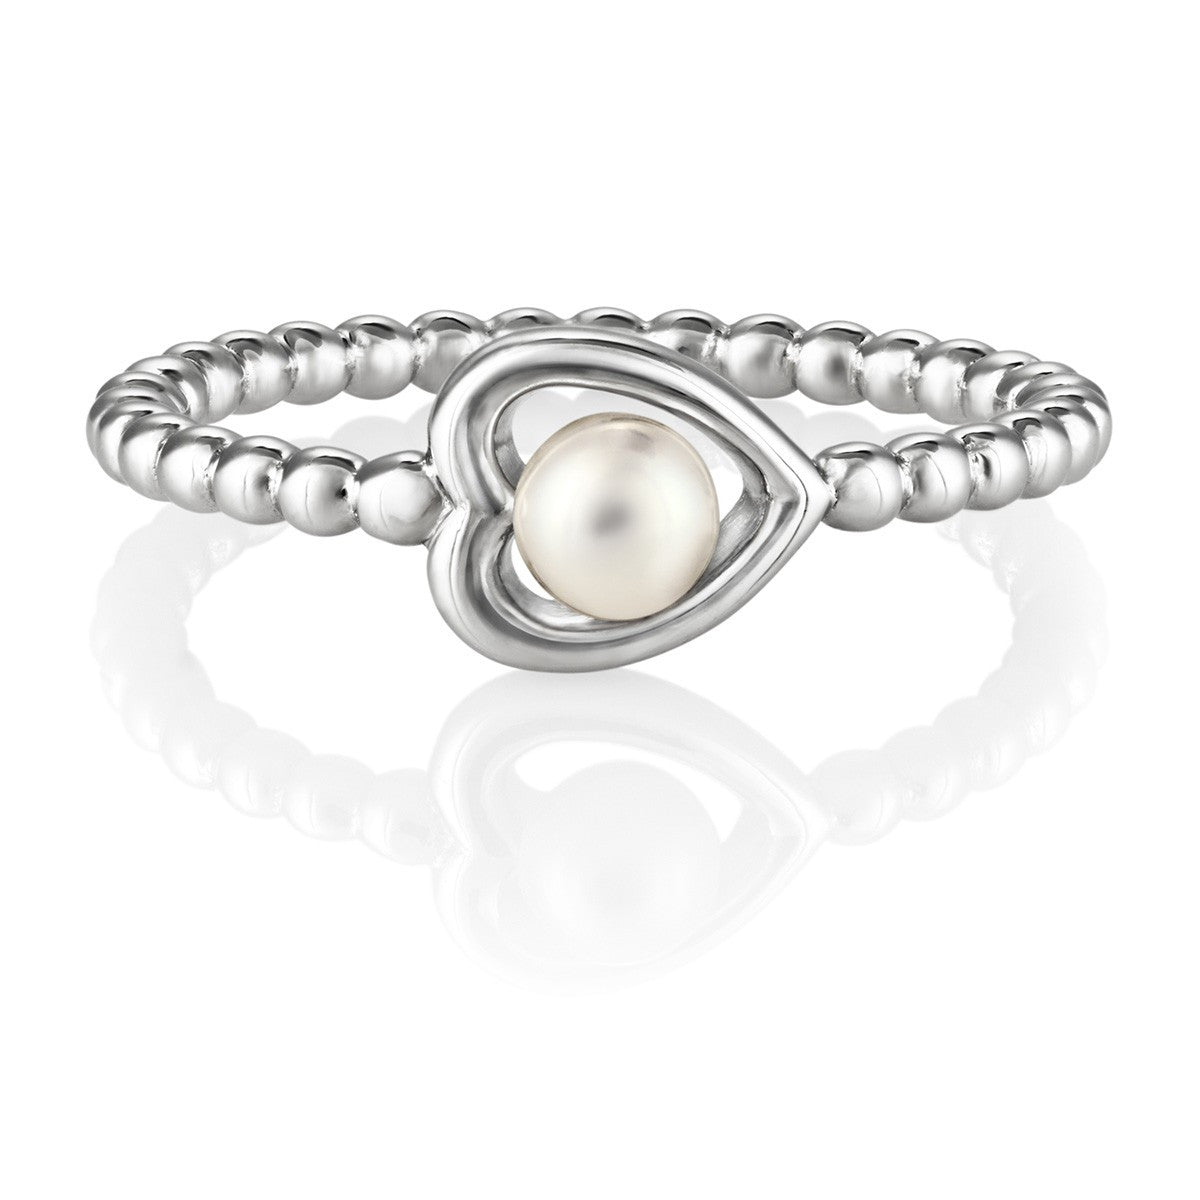 Aphrodite Heart Jersey Pearl Ring - CRED Jewellery - Fairtrade Jewellery - 1